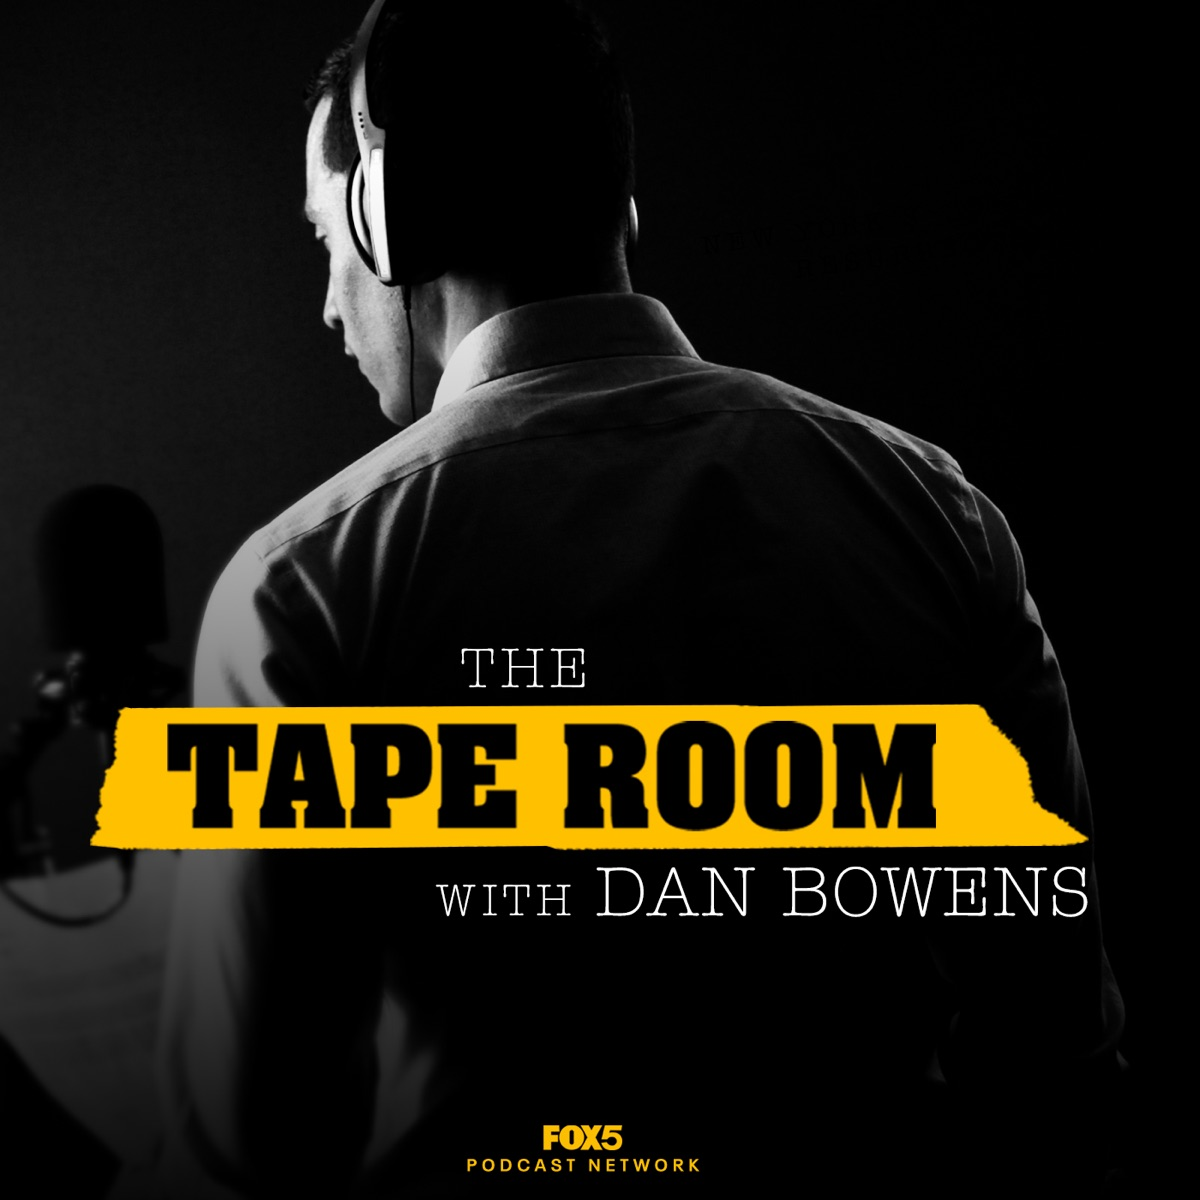 The Tape Room Podcast